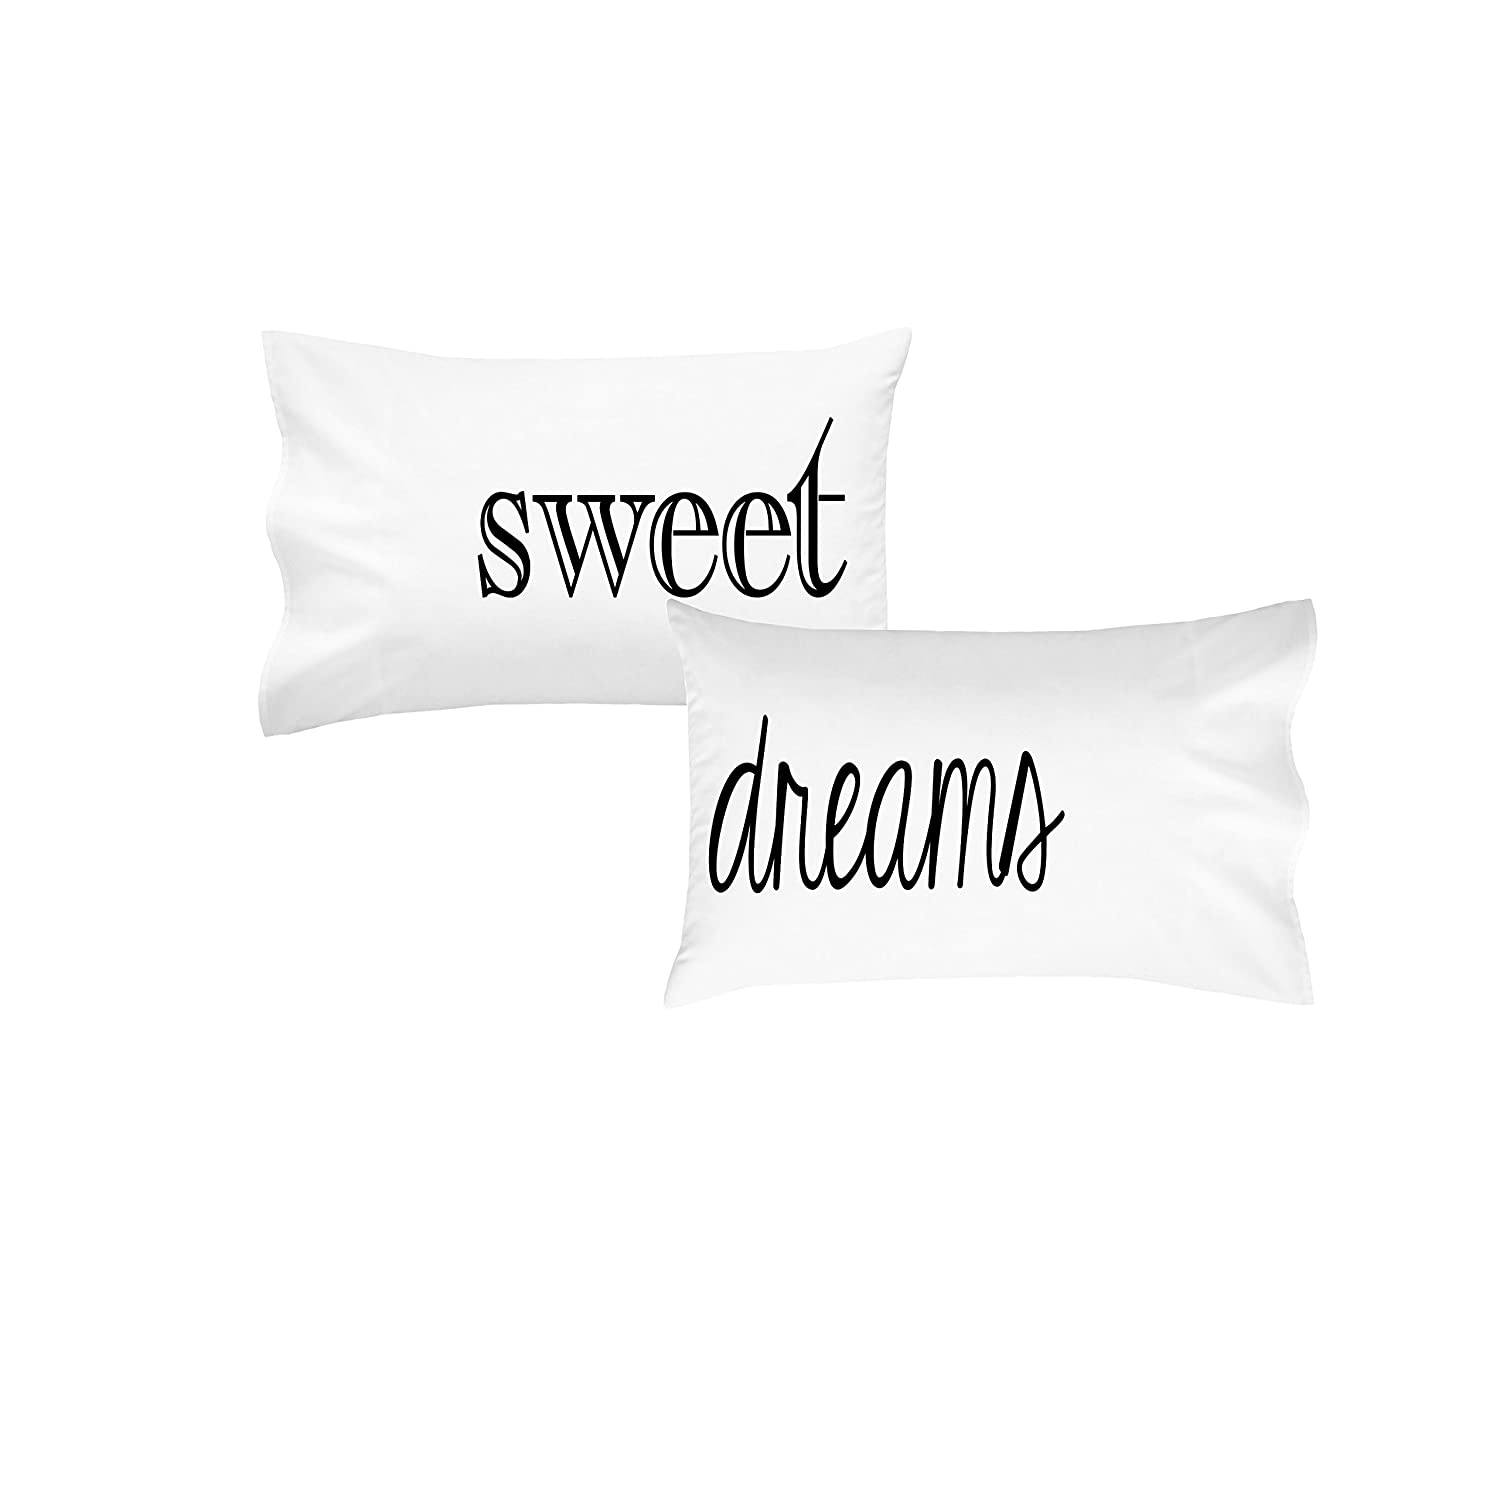 Oh, Susannah® Sweet Dreams Pillowcases | Couples Pillow Cases | Guest Room Pillow Cases (2 Standard / Queen Pillowcases)